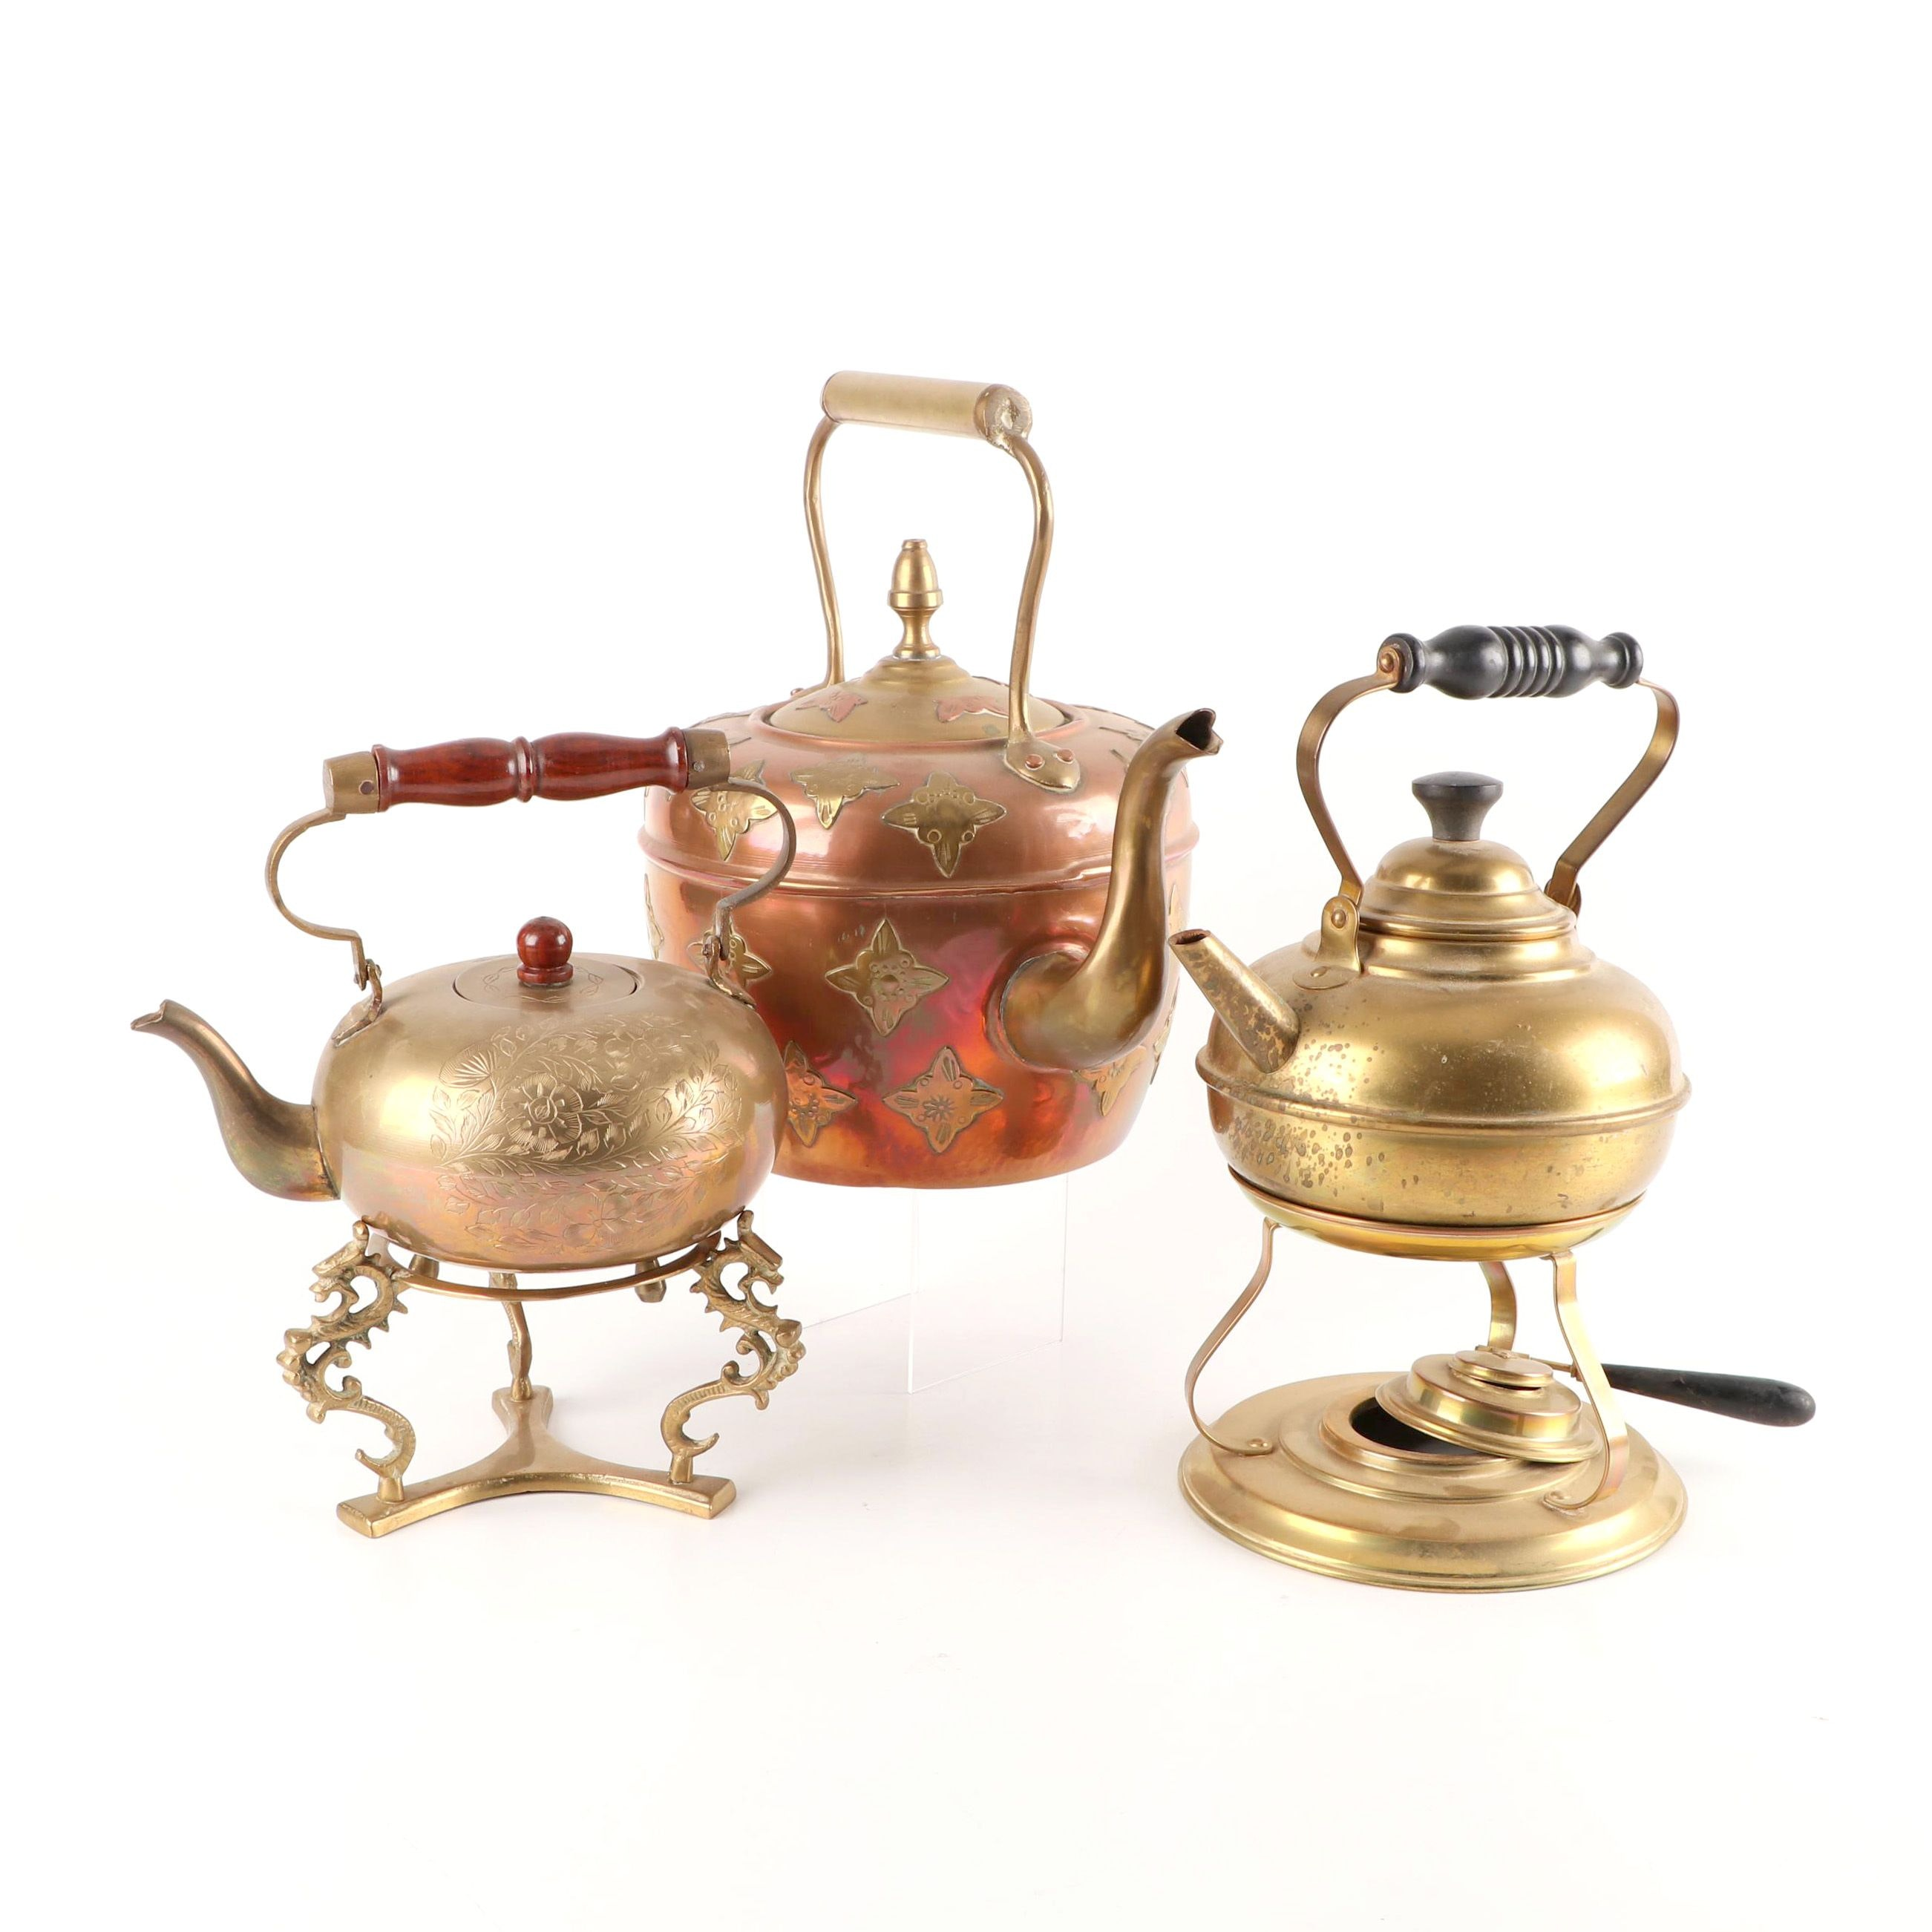 Brass and Copper Teapots with Stands